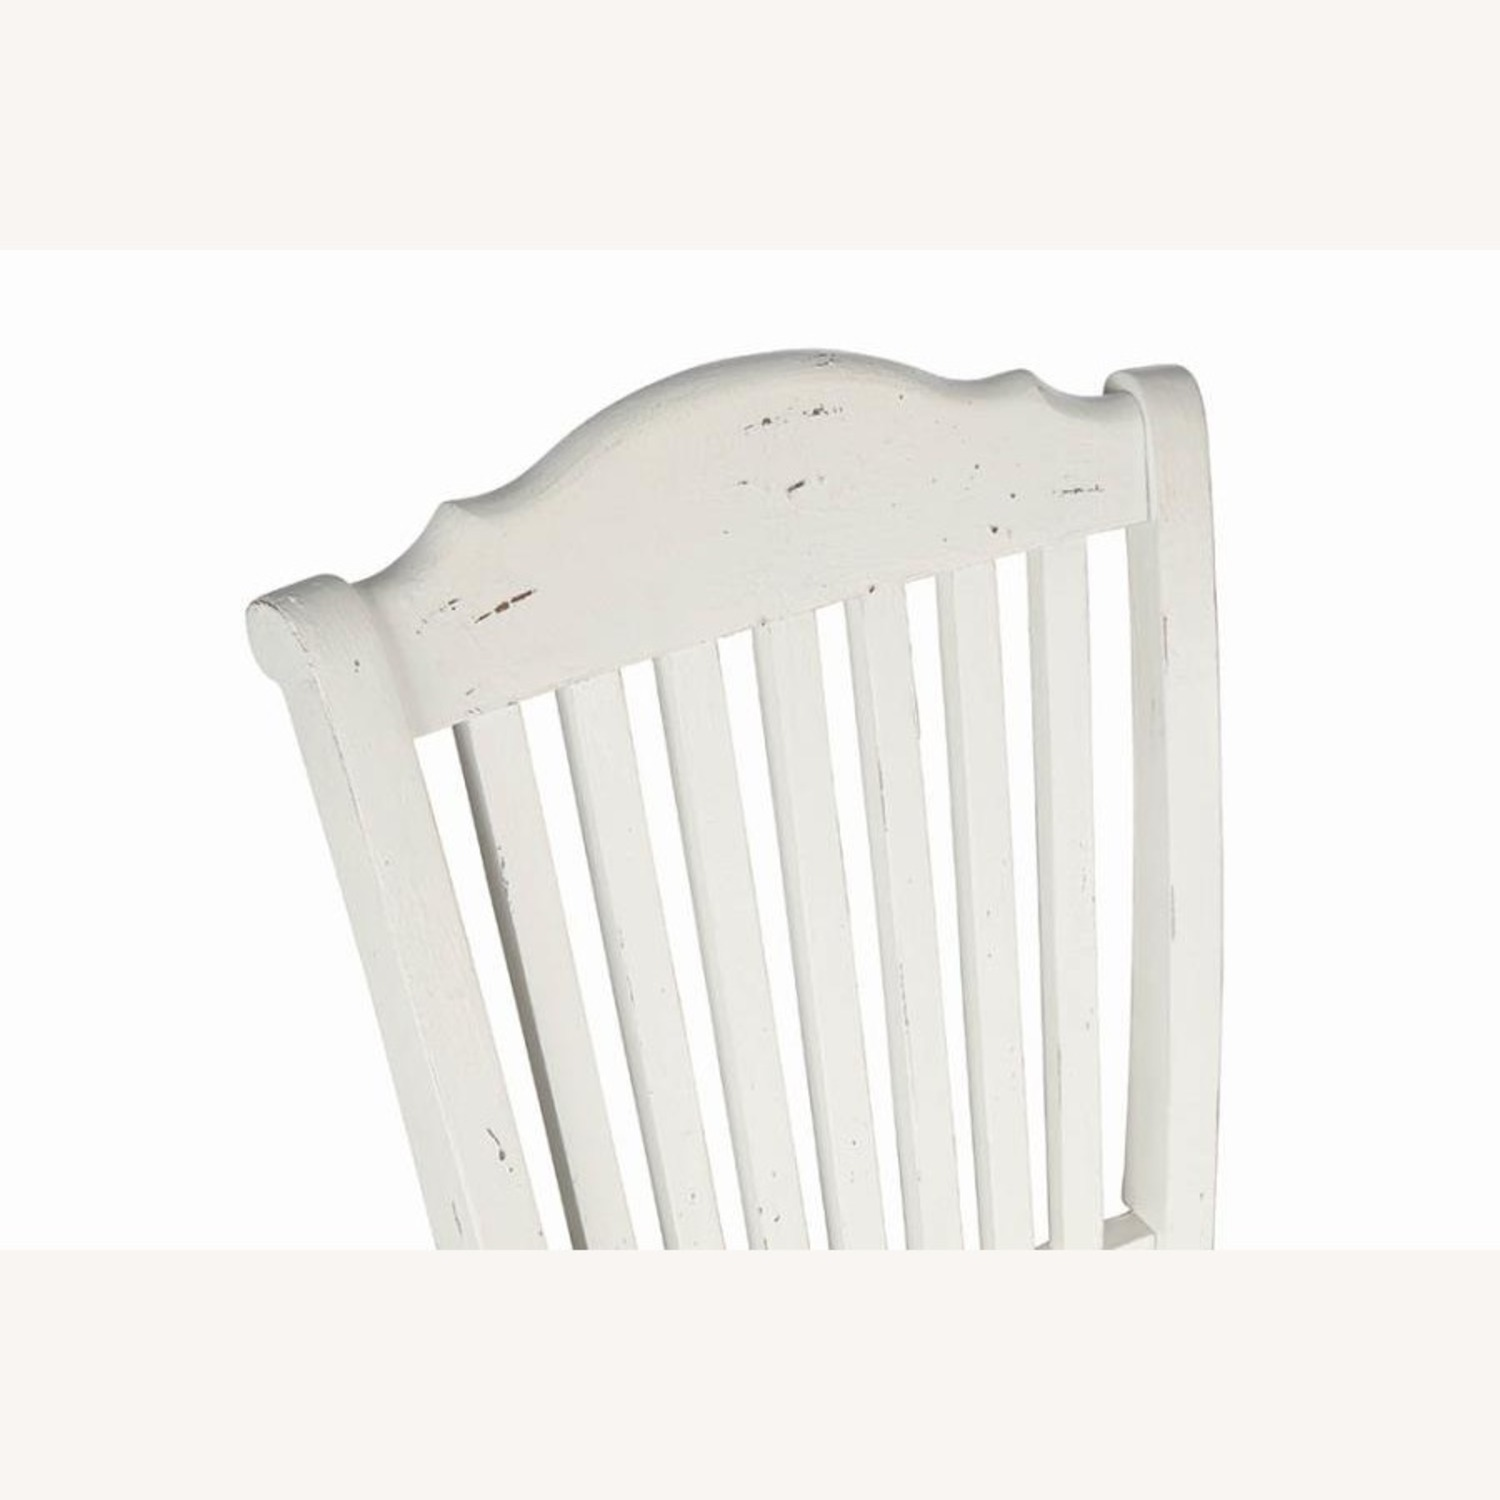 Rustic Farmhouse Style Side Chair In White Finish - image-3